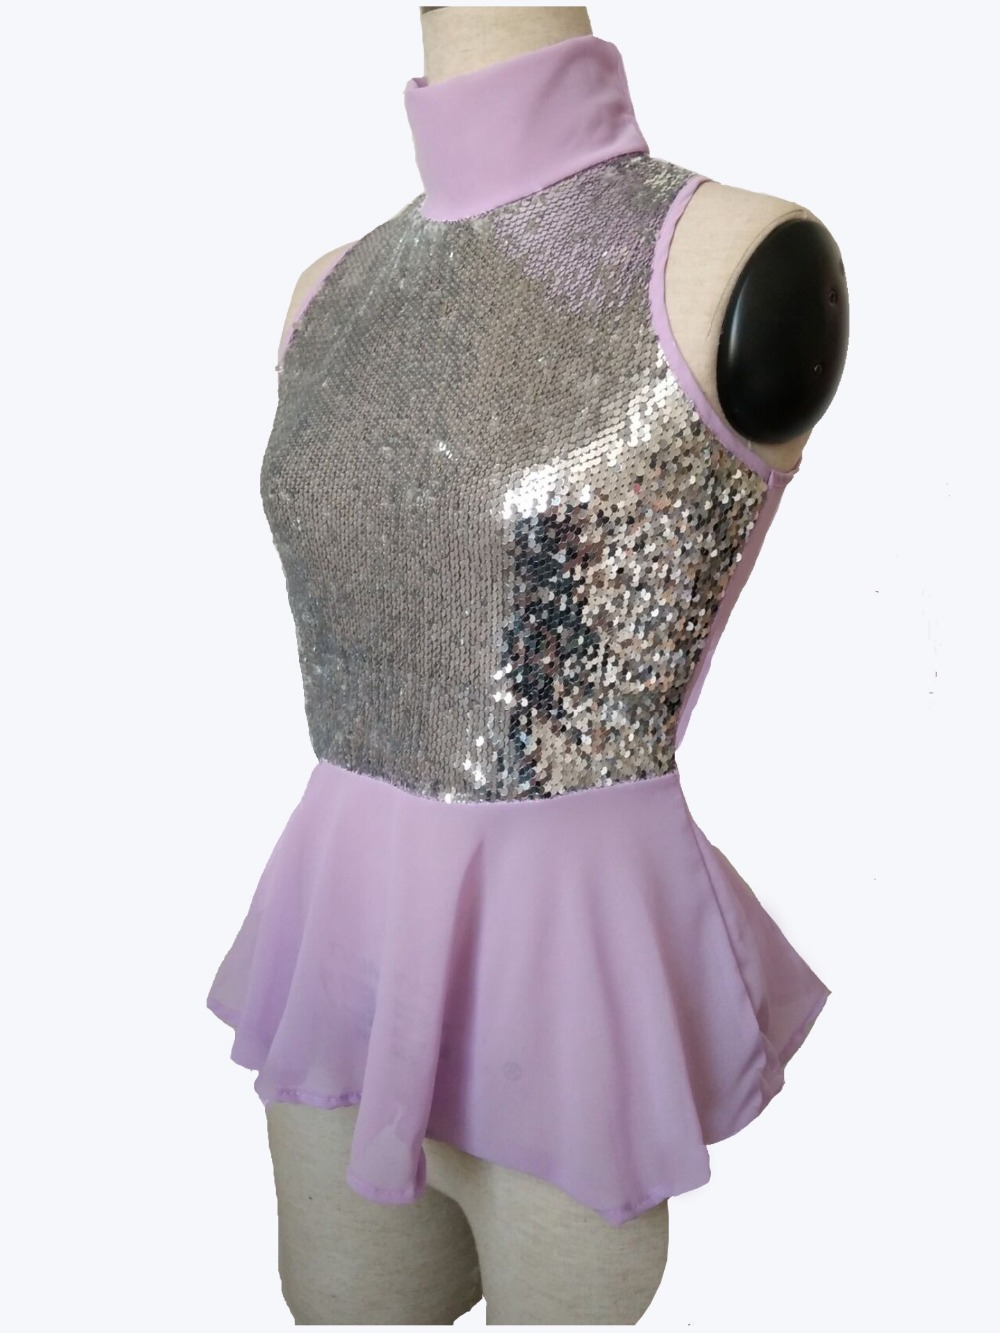 Compare Prices on Sequin Peplum Top- Online Shopping/Buy Low Price ...